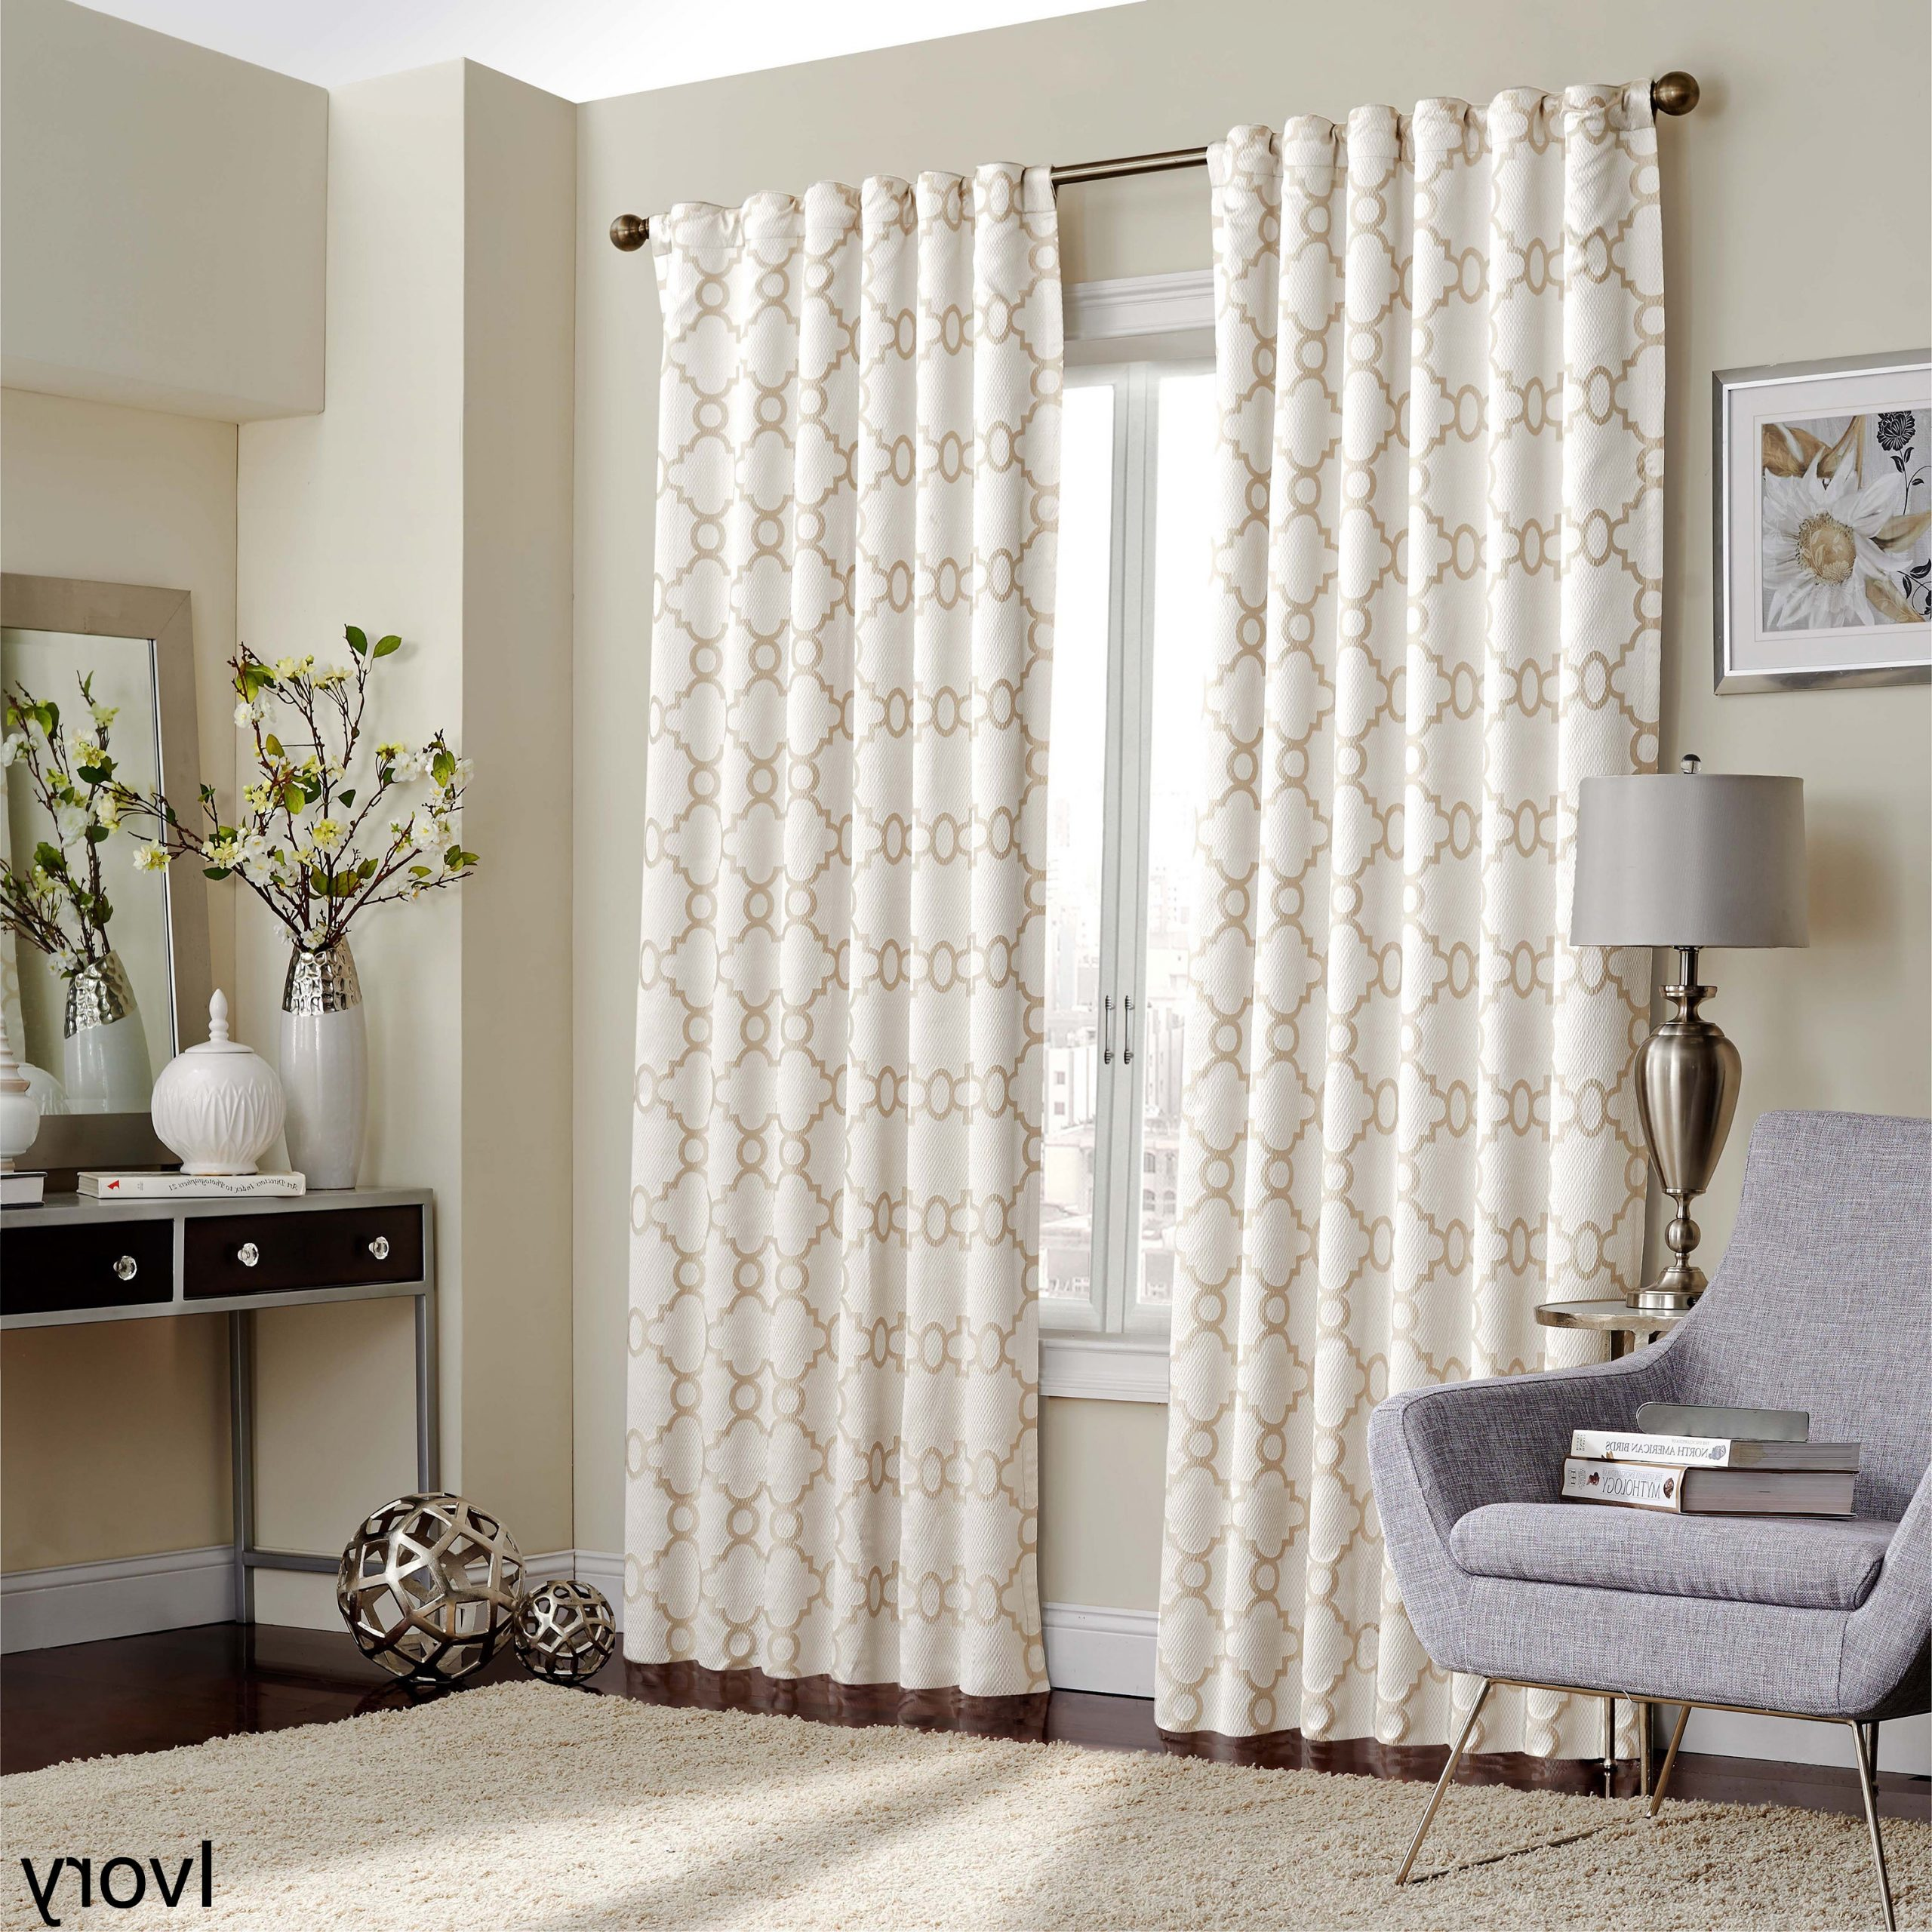 Gracewood Hollow Tucakovic Energy Efficient Fabric Blackout Curtains Pertaining To Fashionable Eclipse Correll Thermalayer Blackout Window Curtain Panel (View 3 of 20)